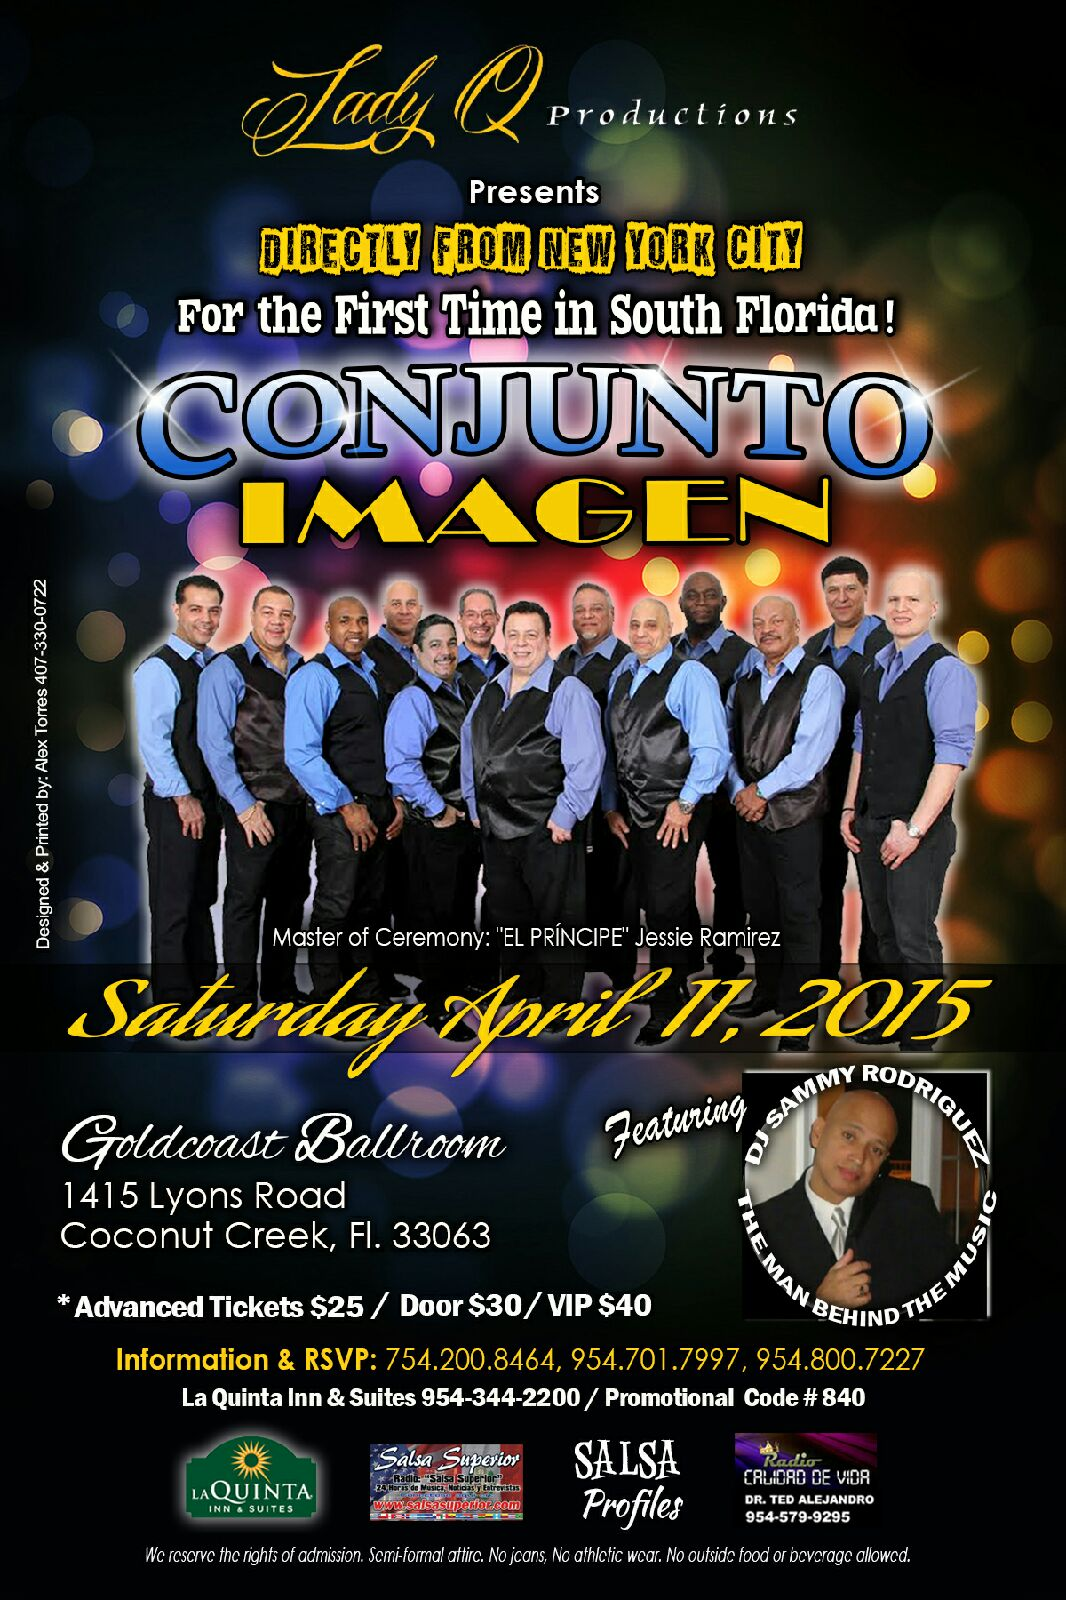 Click to print Flyer:  CONJUNTO IMAGEN - Directly from New York City - Live at Goldcoast Ballroom - Saturday, April 11, 2015